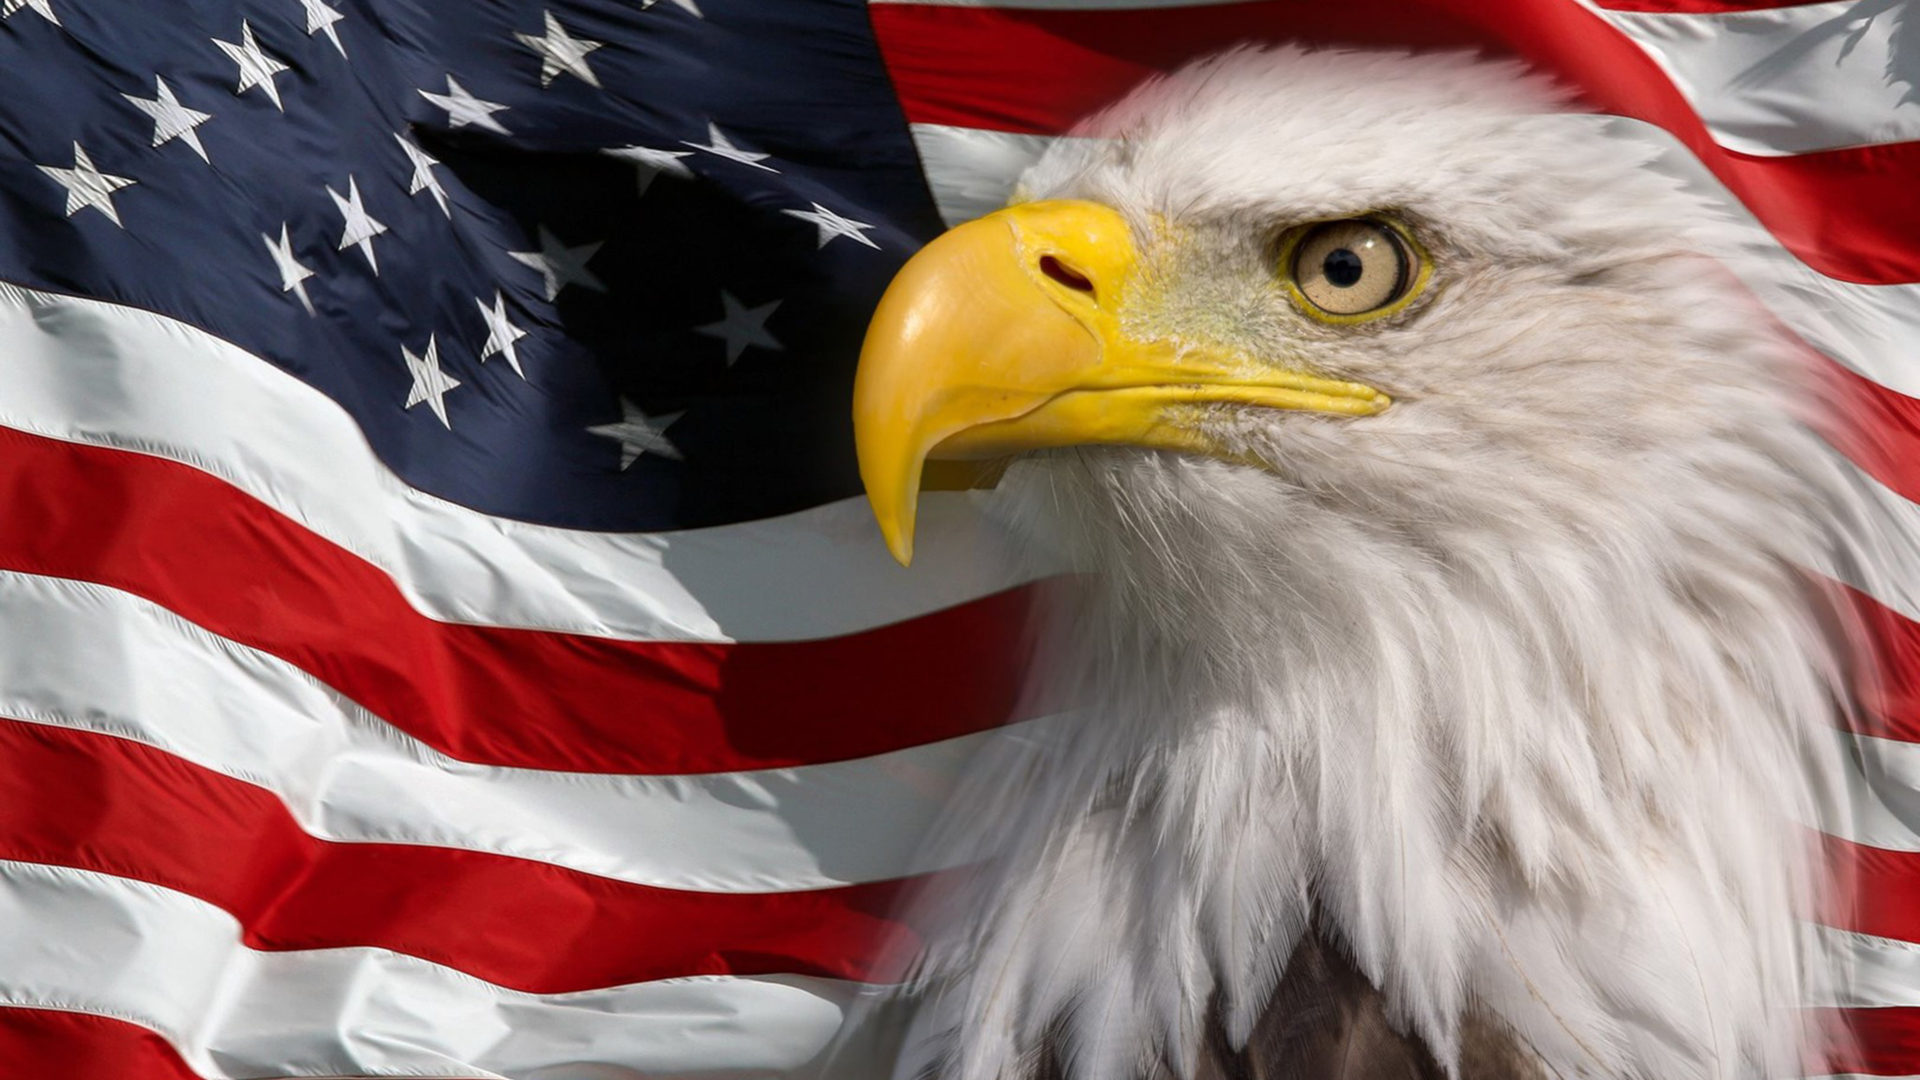 Hd Wallpapers Cars For Iphone American Flag And Bald Eagle Symbol Of America Picture Hd